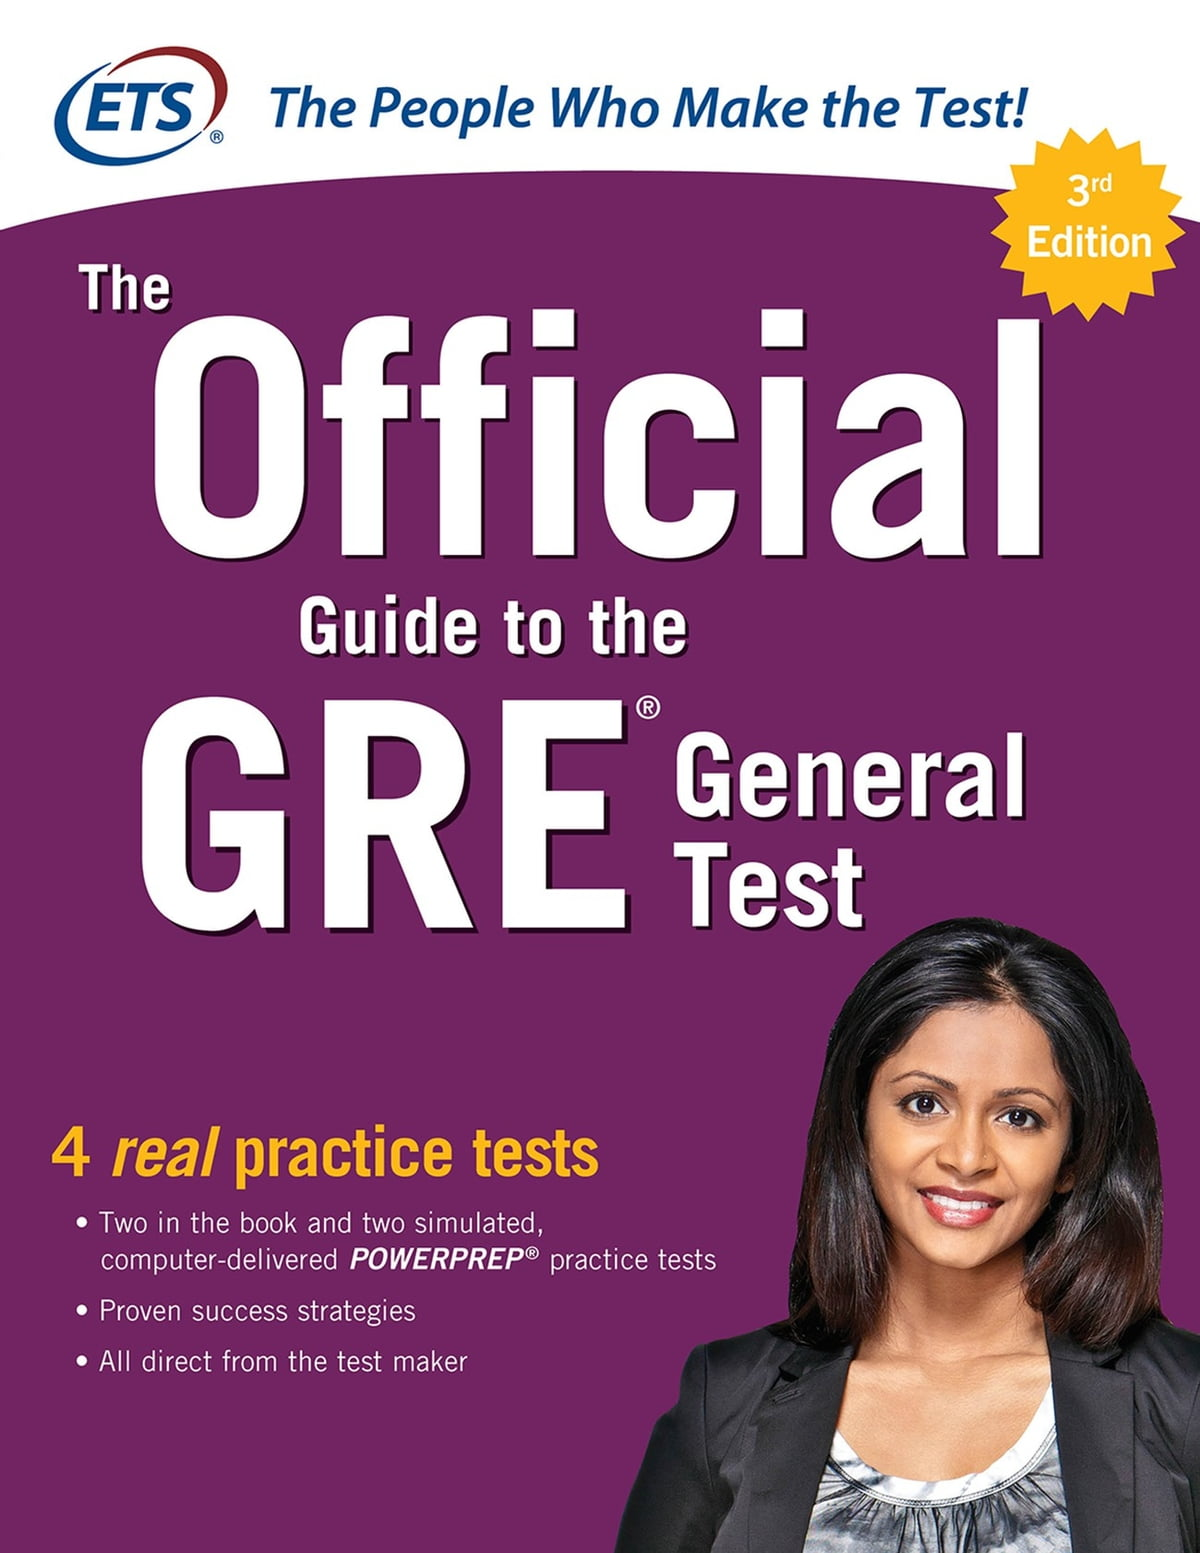 The Official Guide to the GRE General Test, Third Edition eBook by  Educational Testing Service - 9781259862427 | Rakuten Kobo